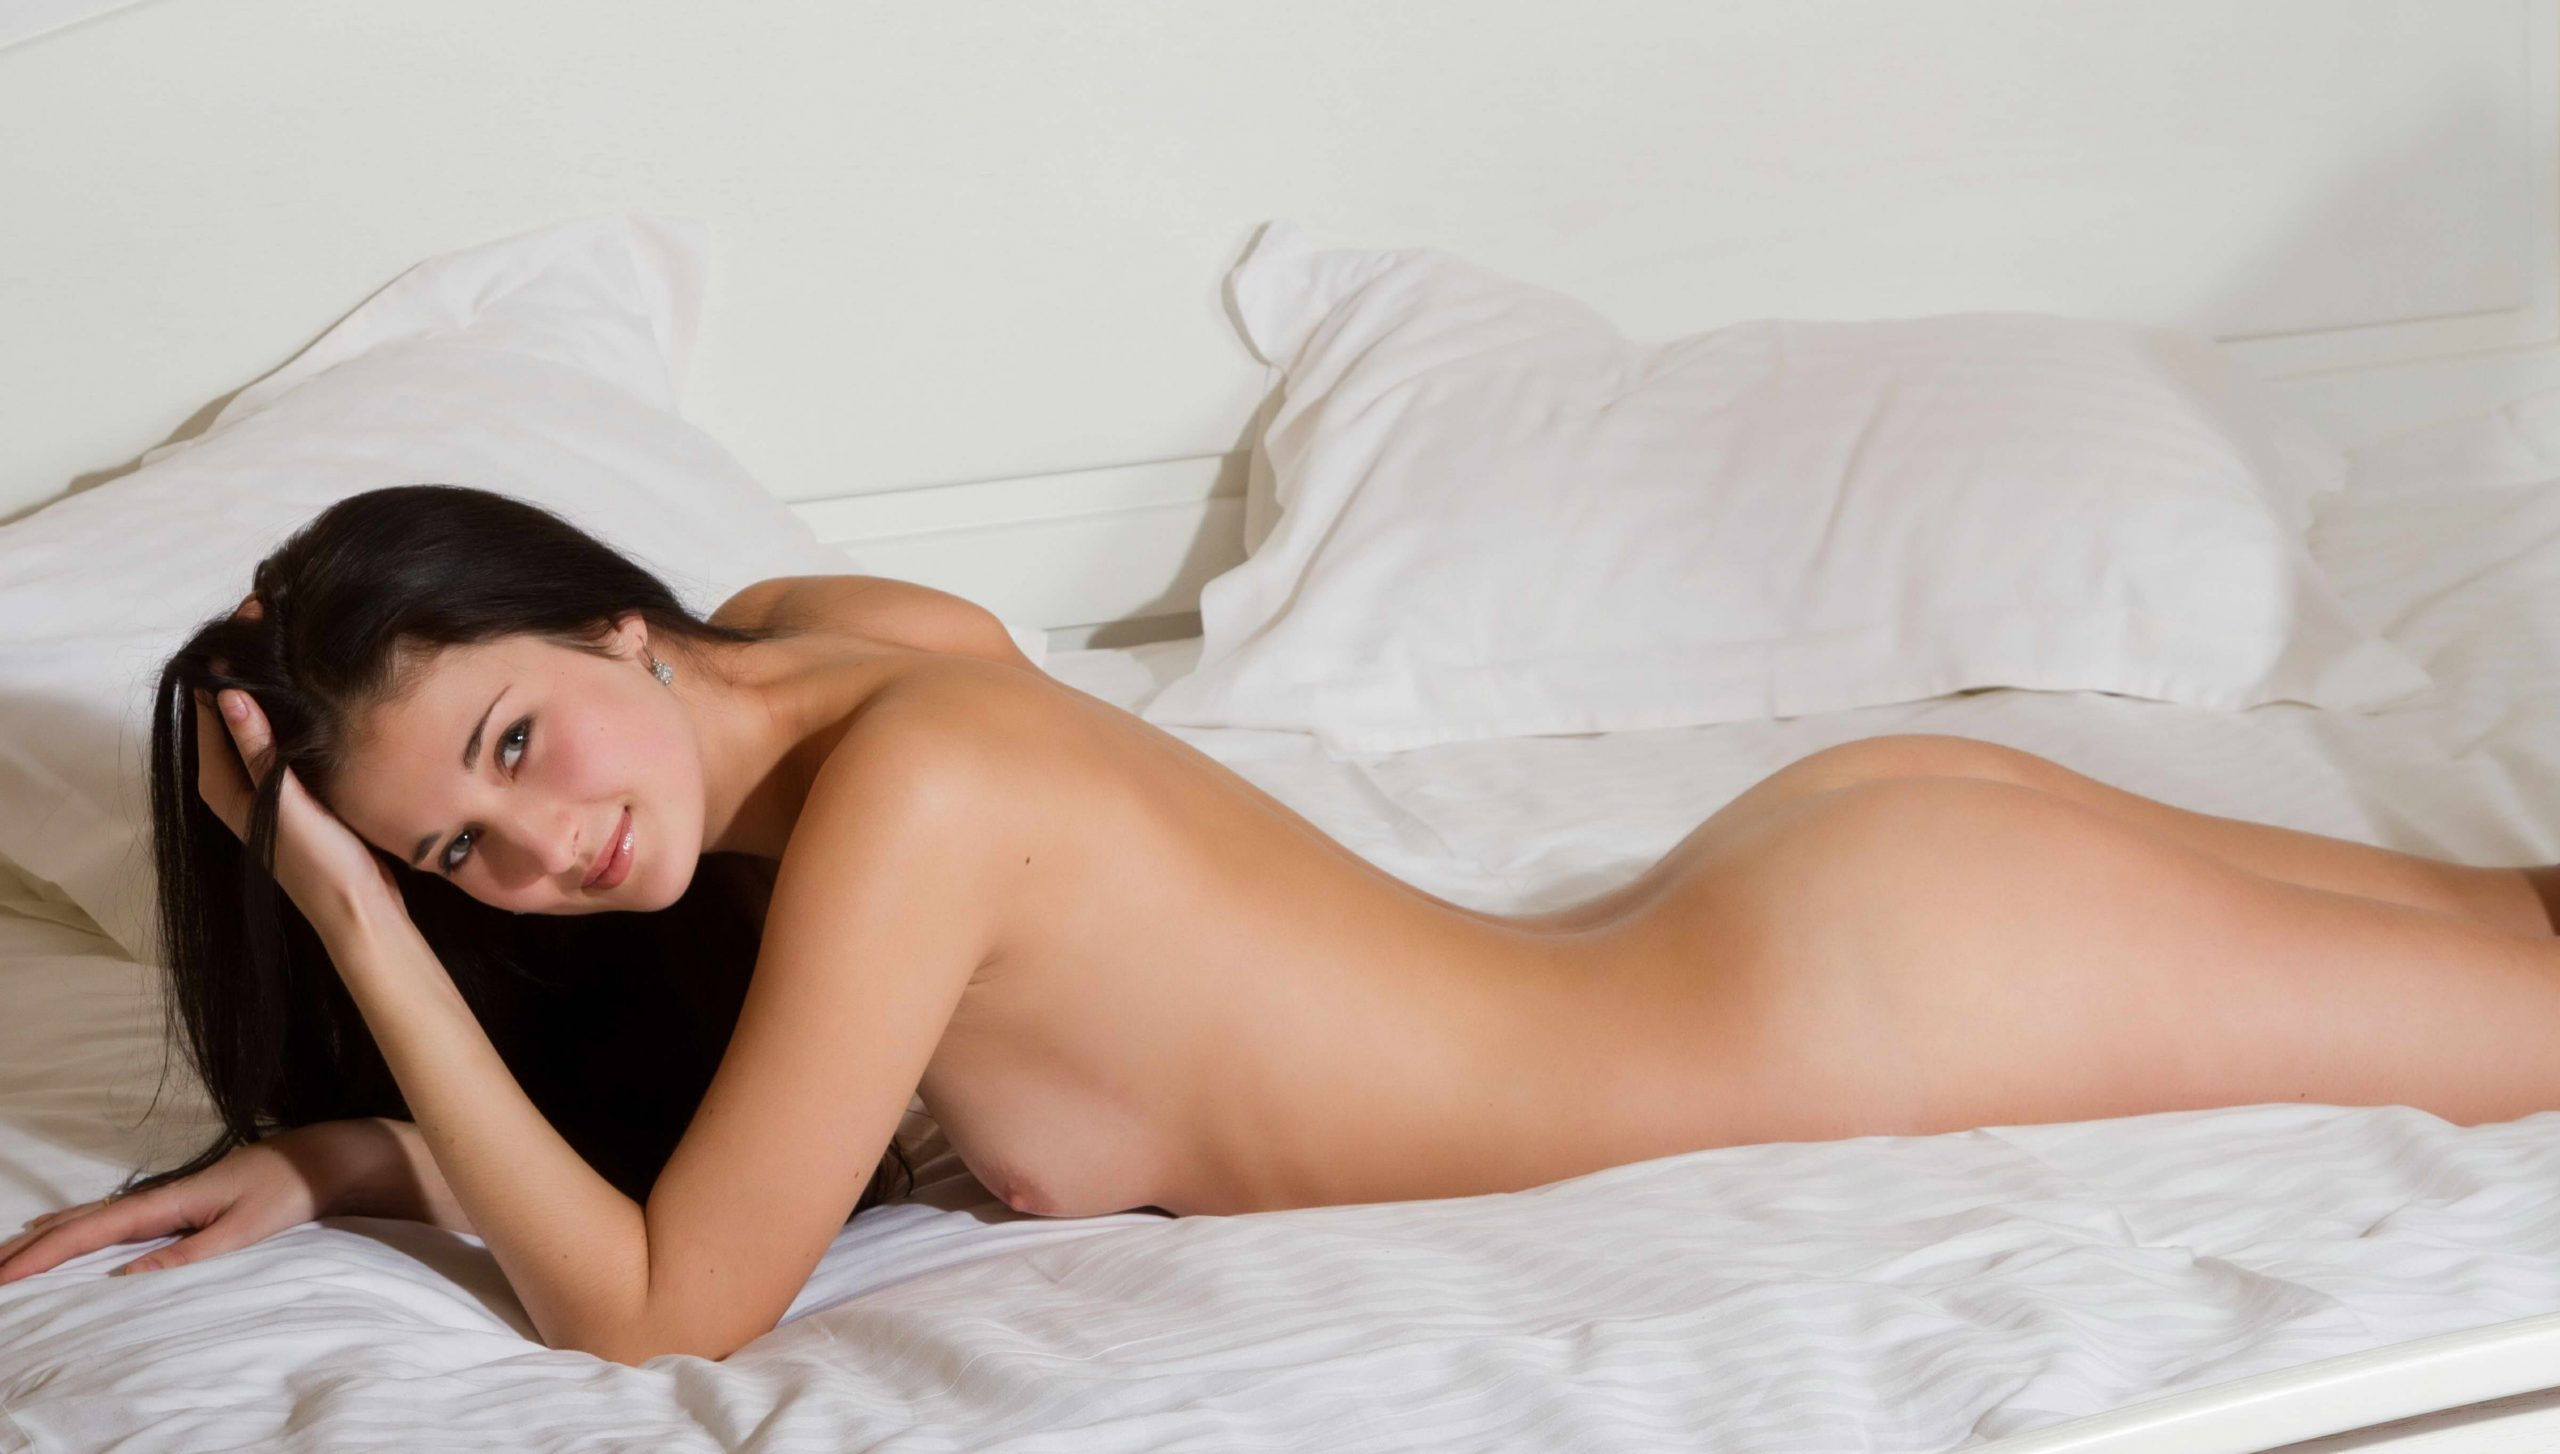 Naked Beauty On Her Belly in a white bed